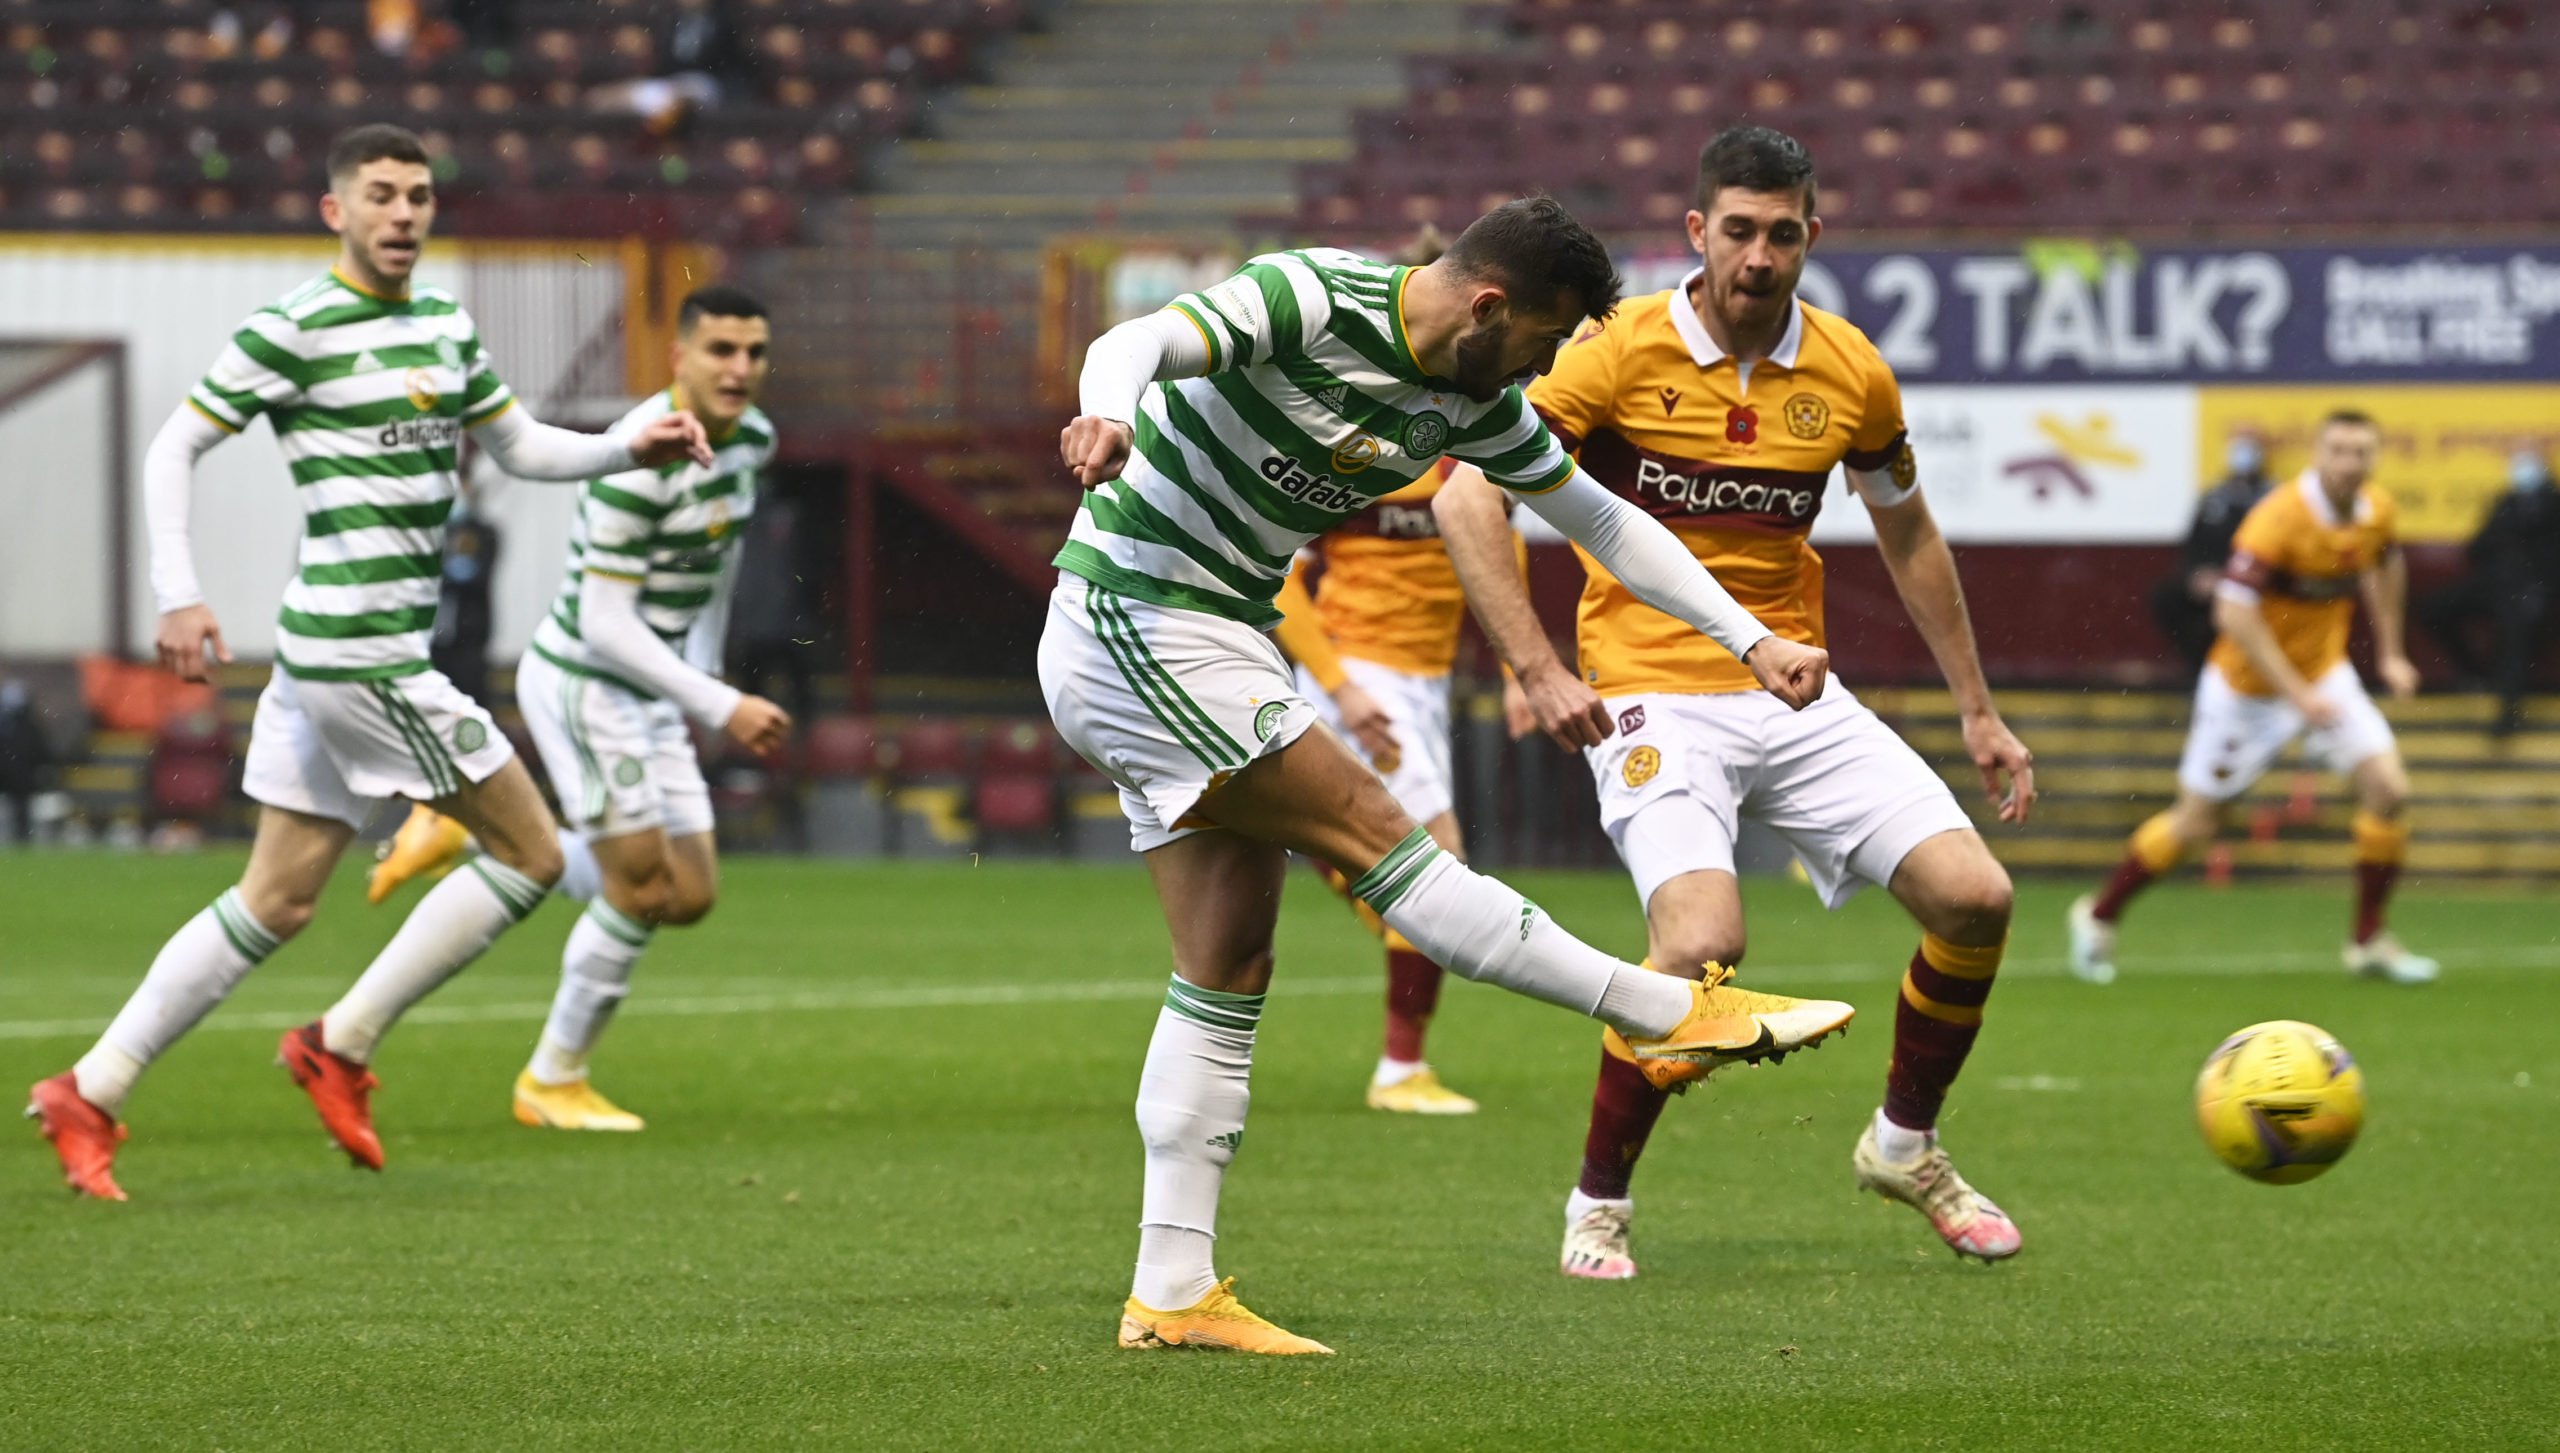 Albian Ajeti made a key contribution for Celtic today